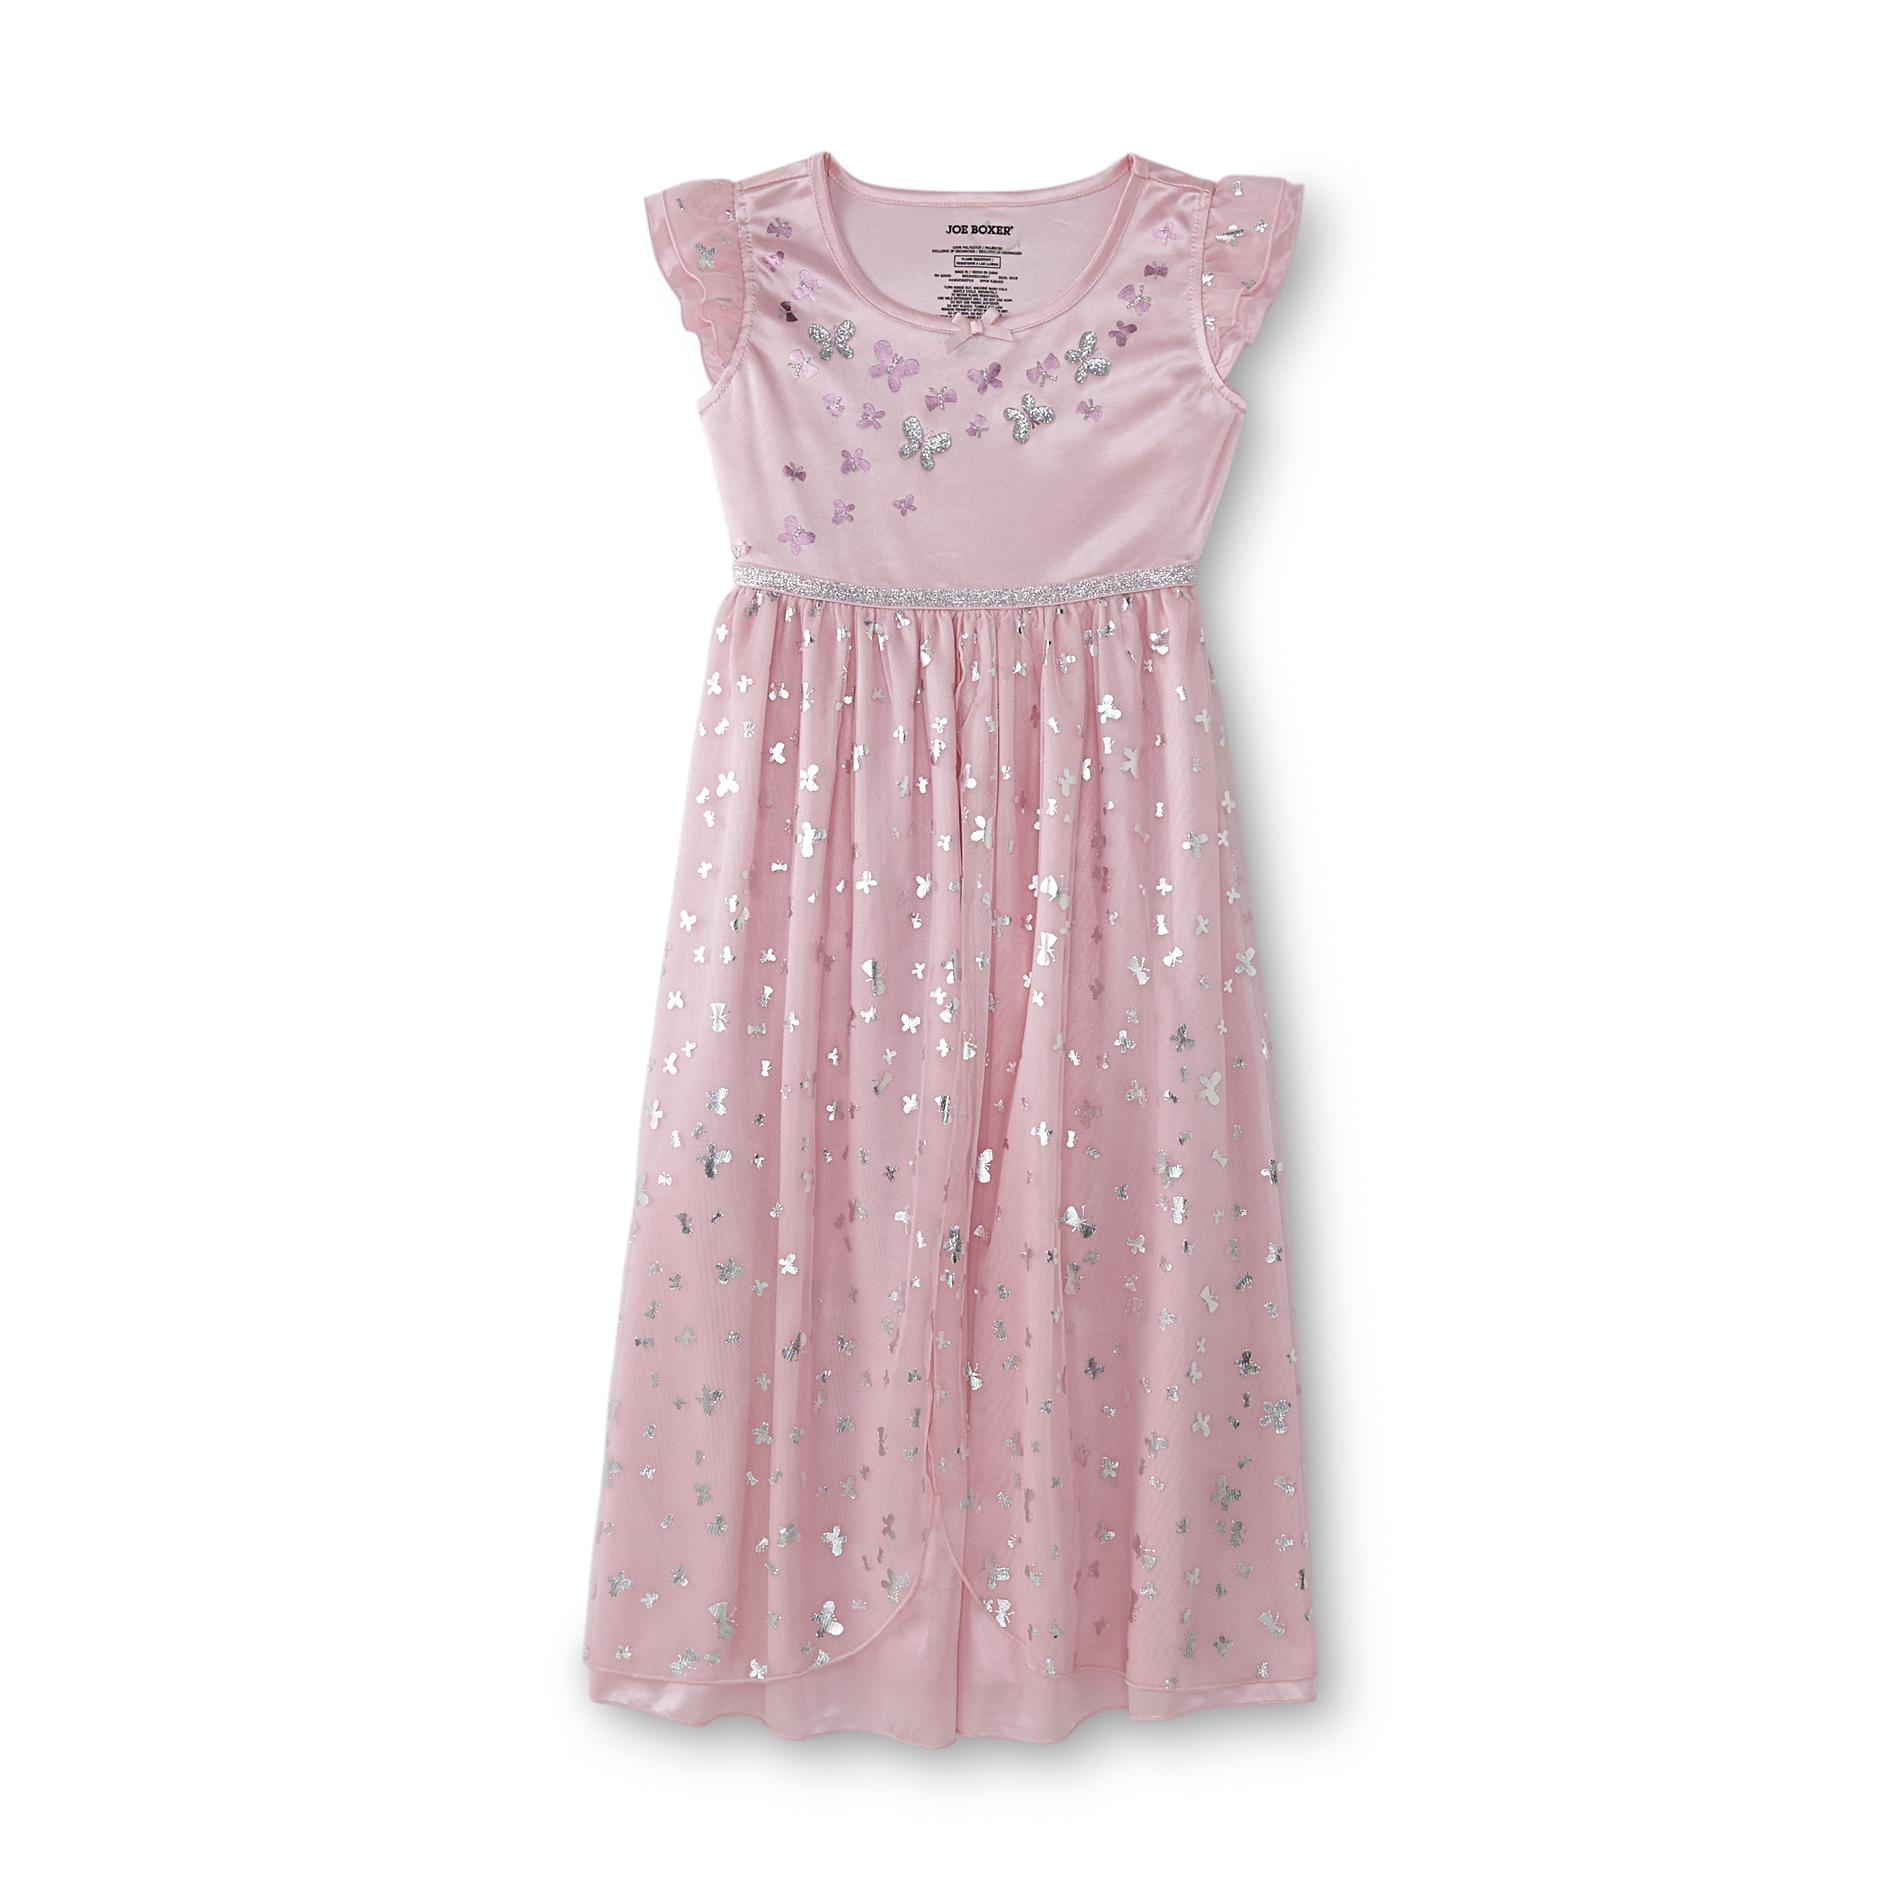 Joe Boxer Girl's Princess Glittery Nightgown - Butterflies